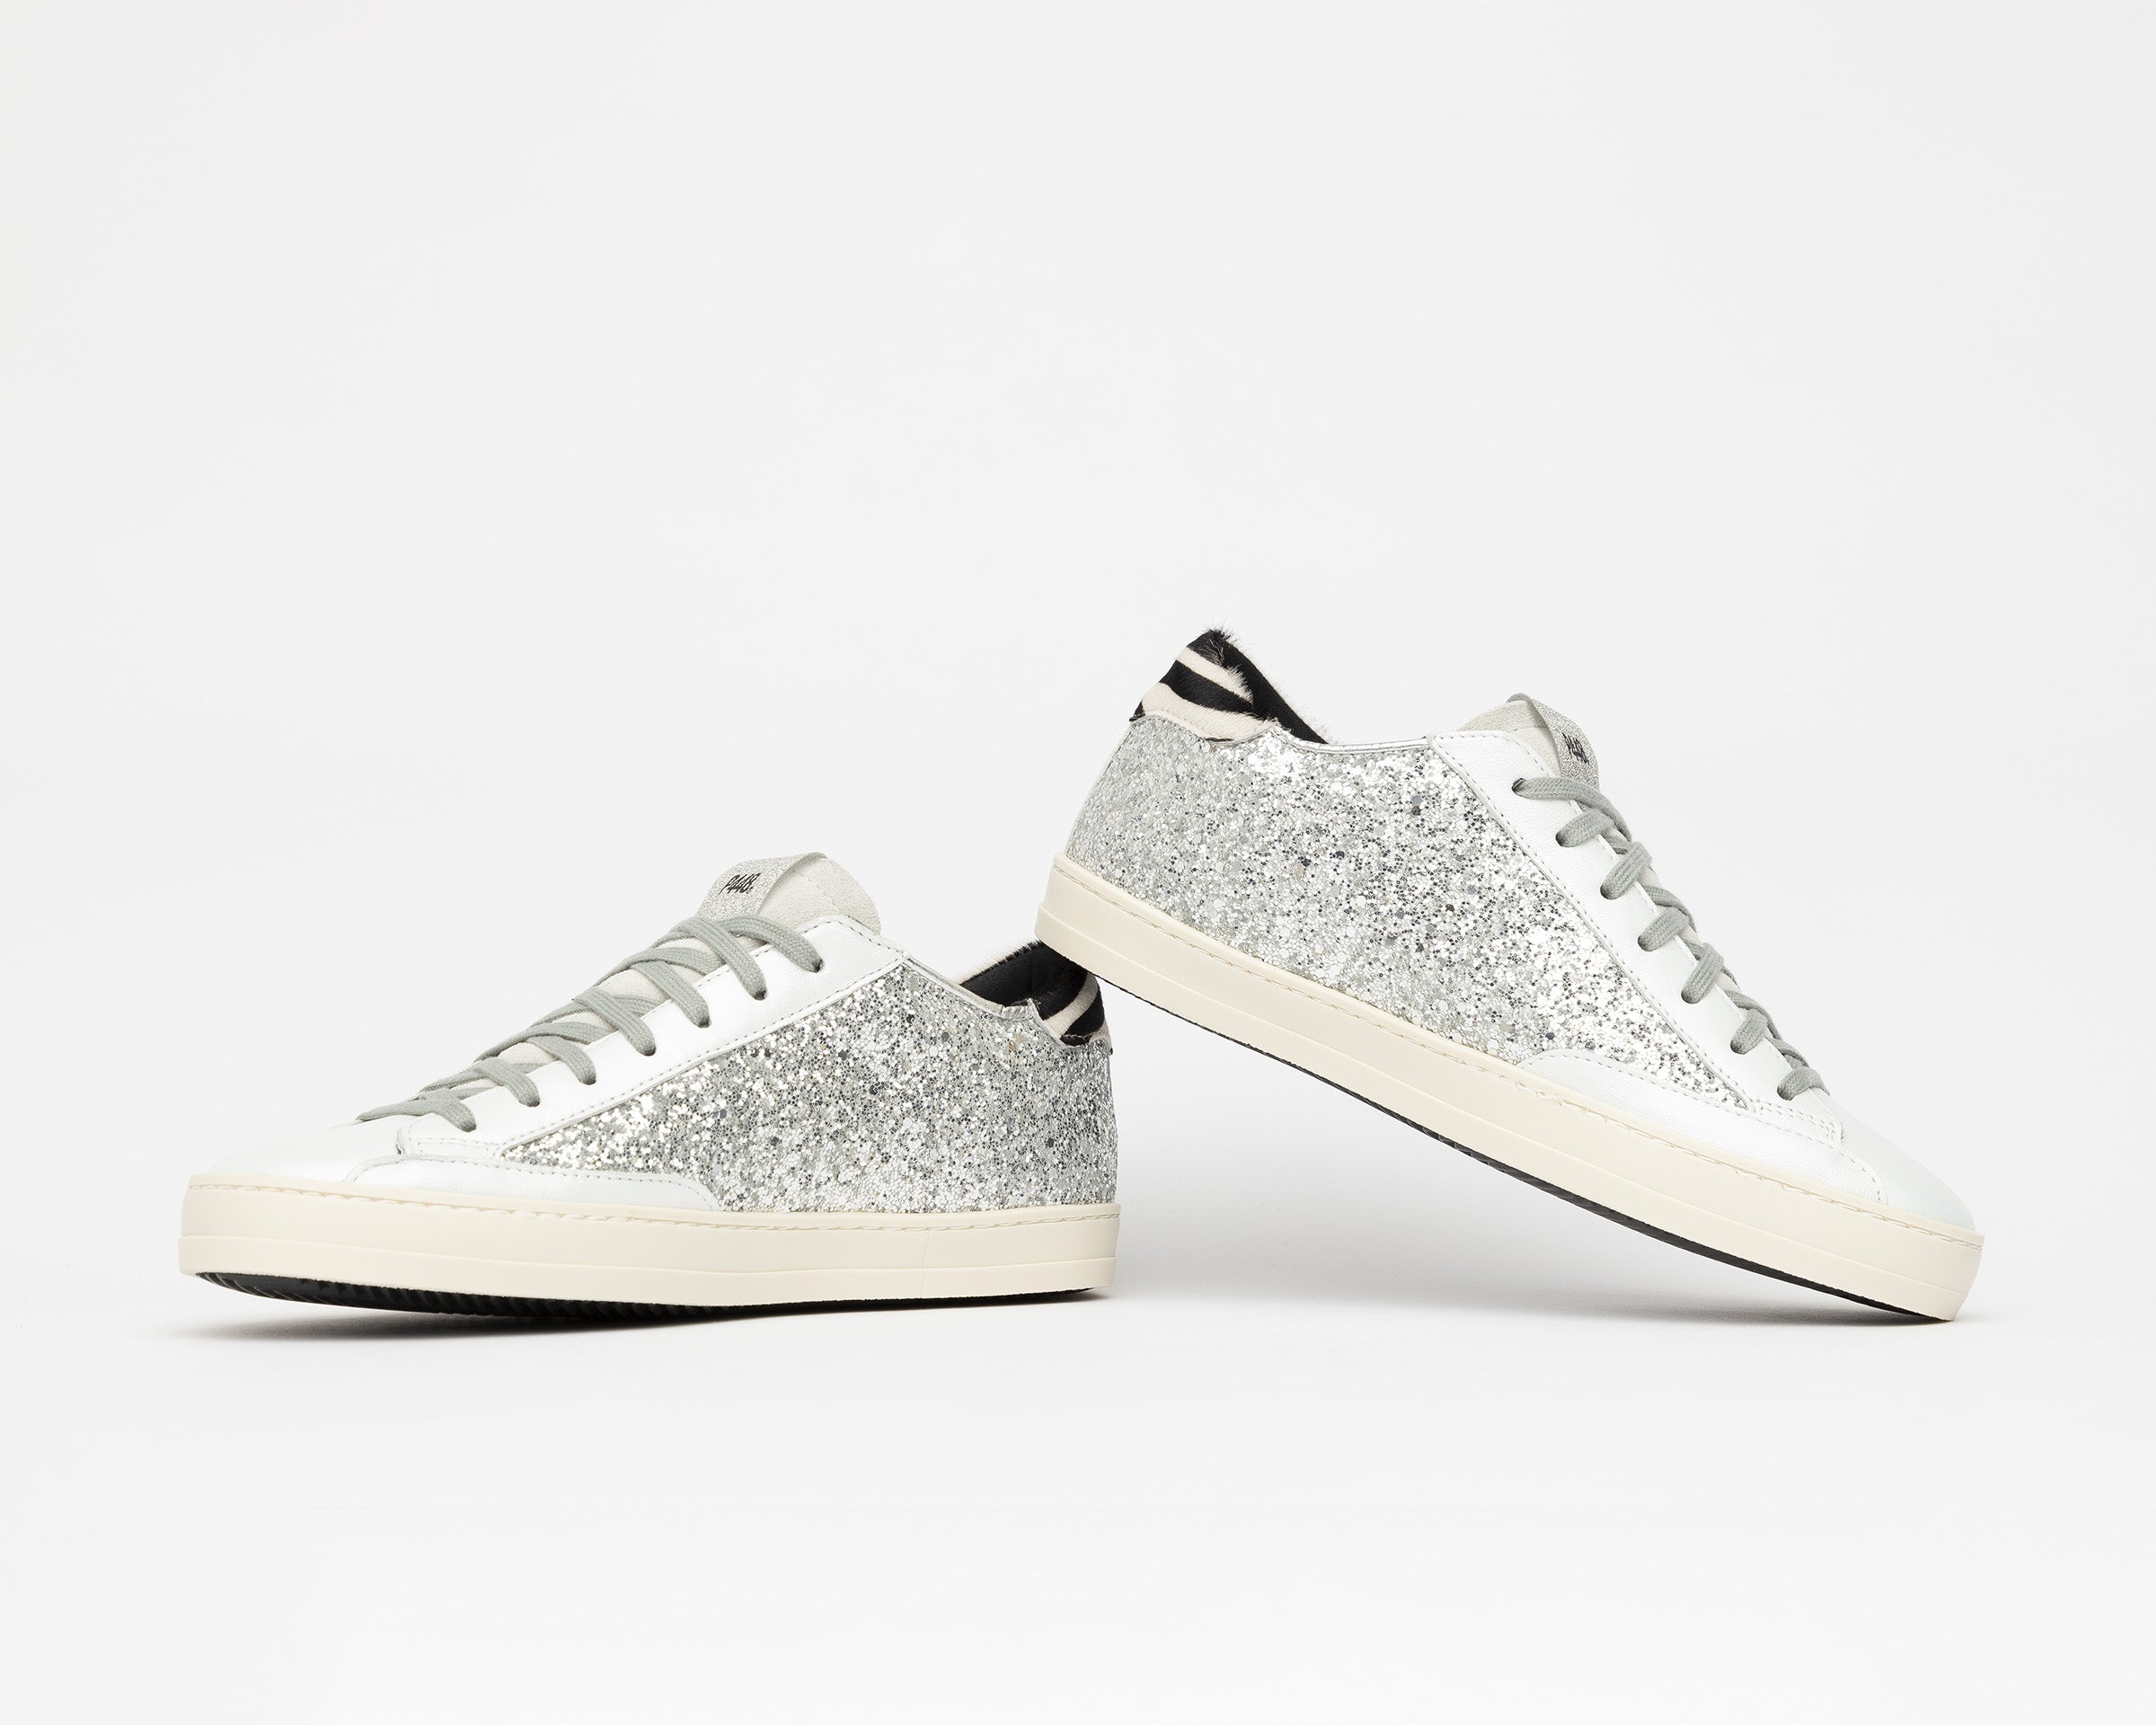 JohnBS Low-Top Sneaker in Silver Glitter - Detail 2